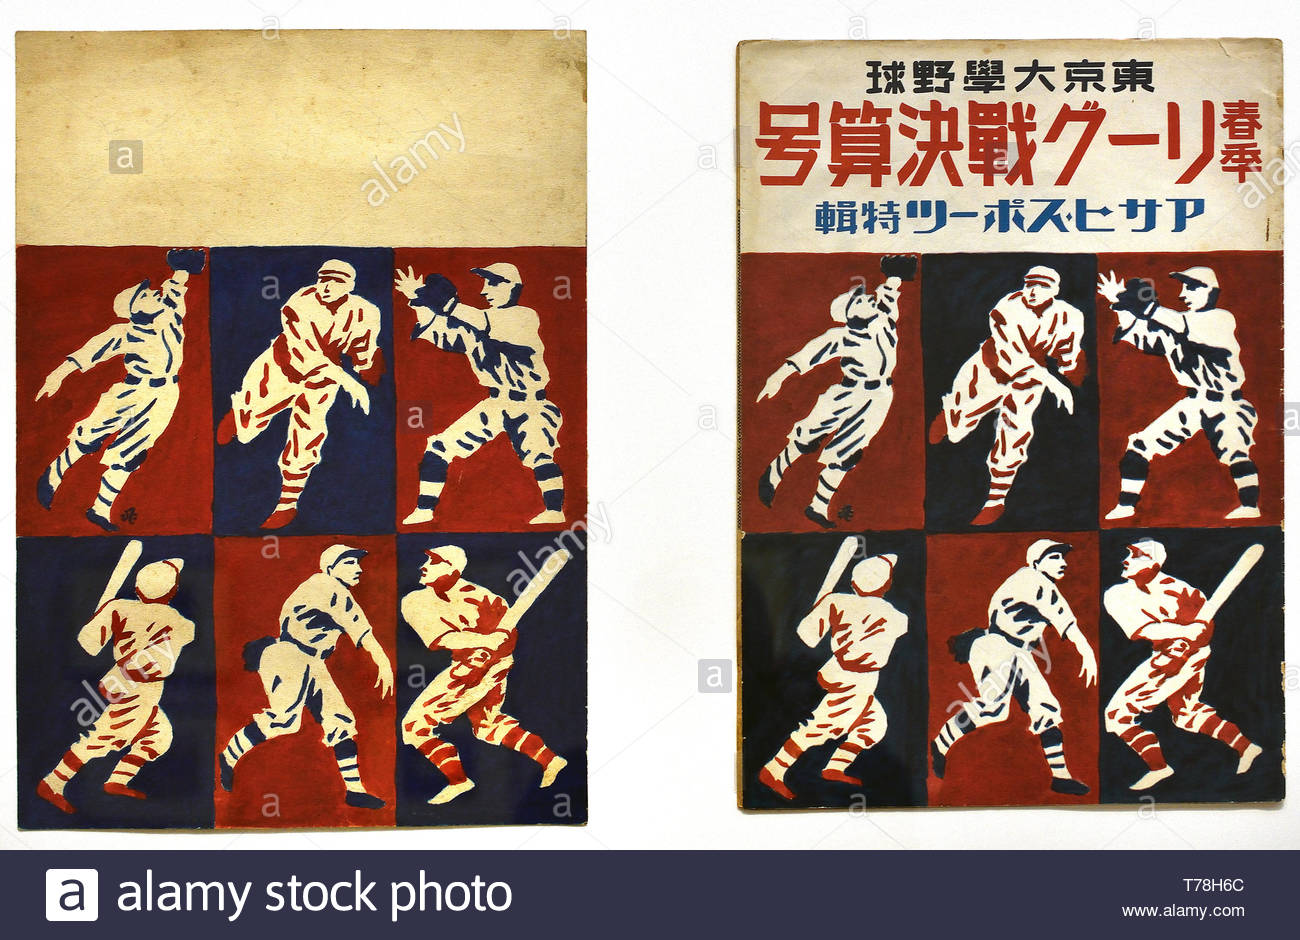 Report of Spring Matches of the Baseball League 1939  Kawanishi Hide Born in 1894 Kobe, Japan, Japanese Painter ( color woodcut on paper ) - Stock Image